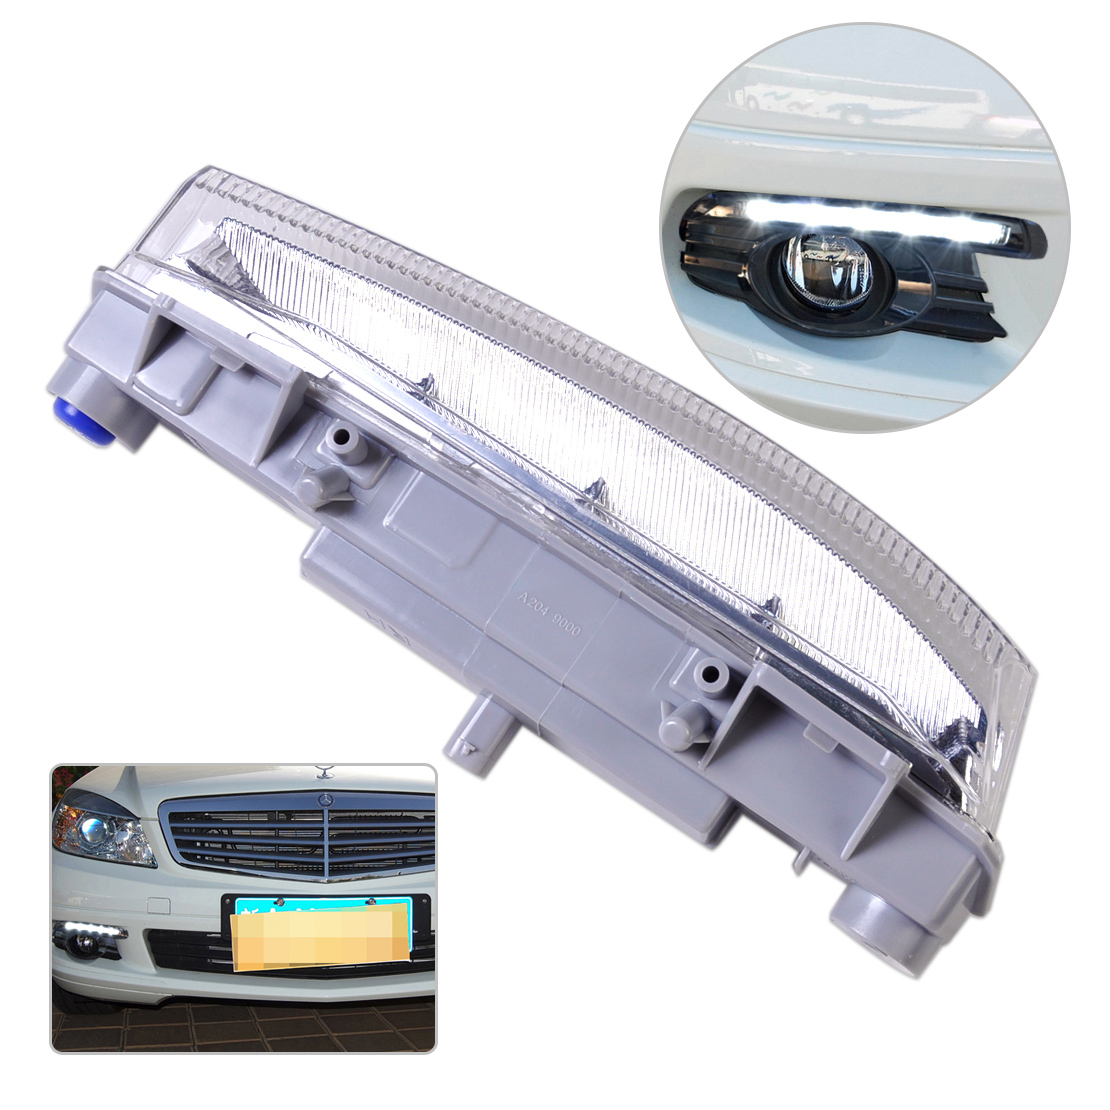 ФОТО 1Pc DRL Fog Light Lamp Right 2049069000 204 906 90 00 Fit for Mercedes Benz W204 W212 S204 R172 High Quality